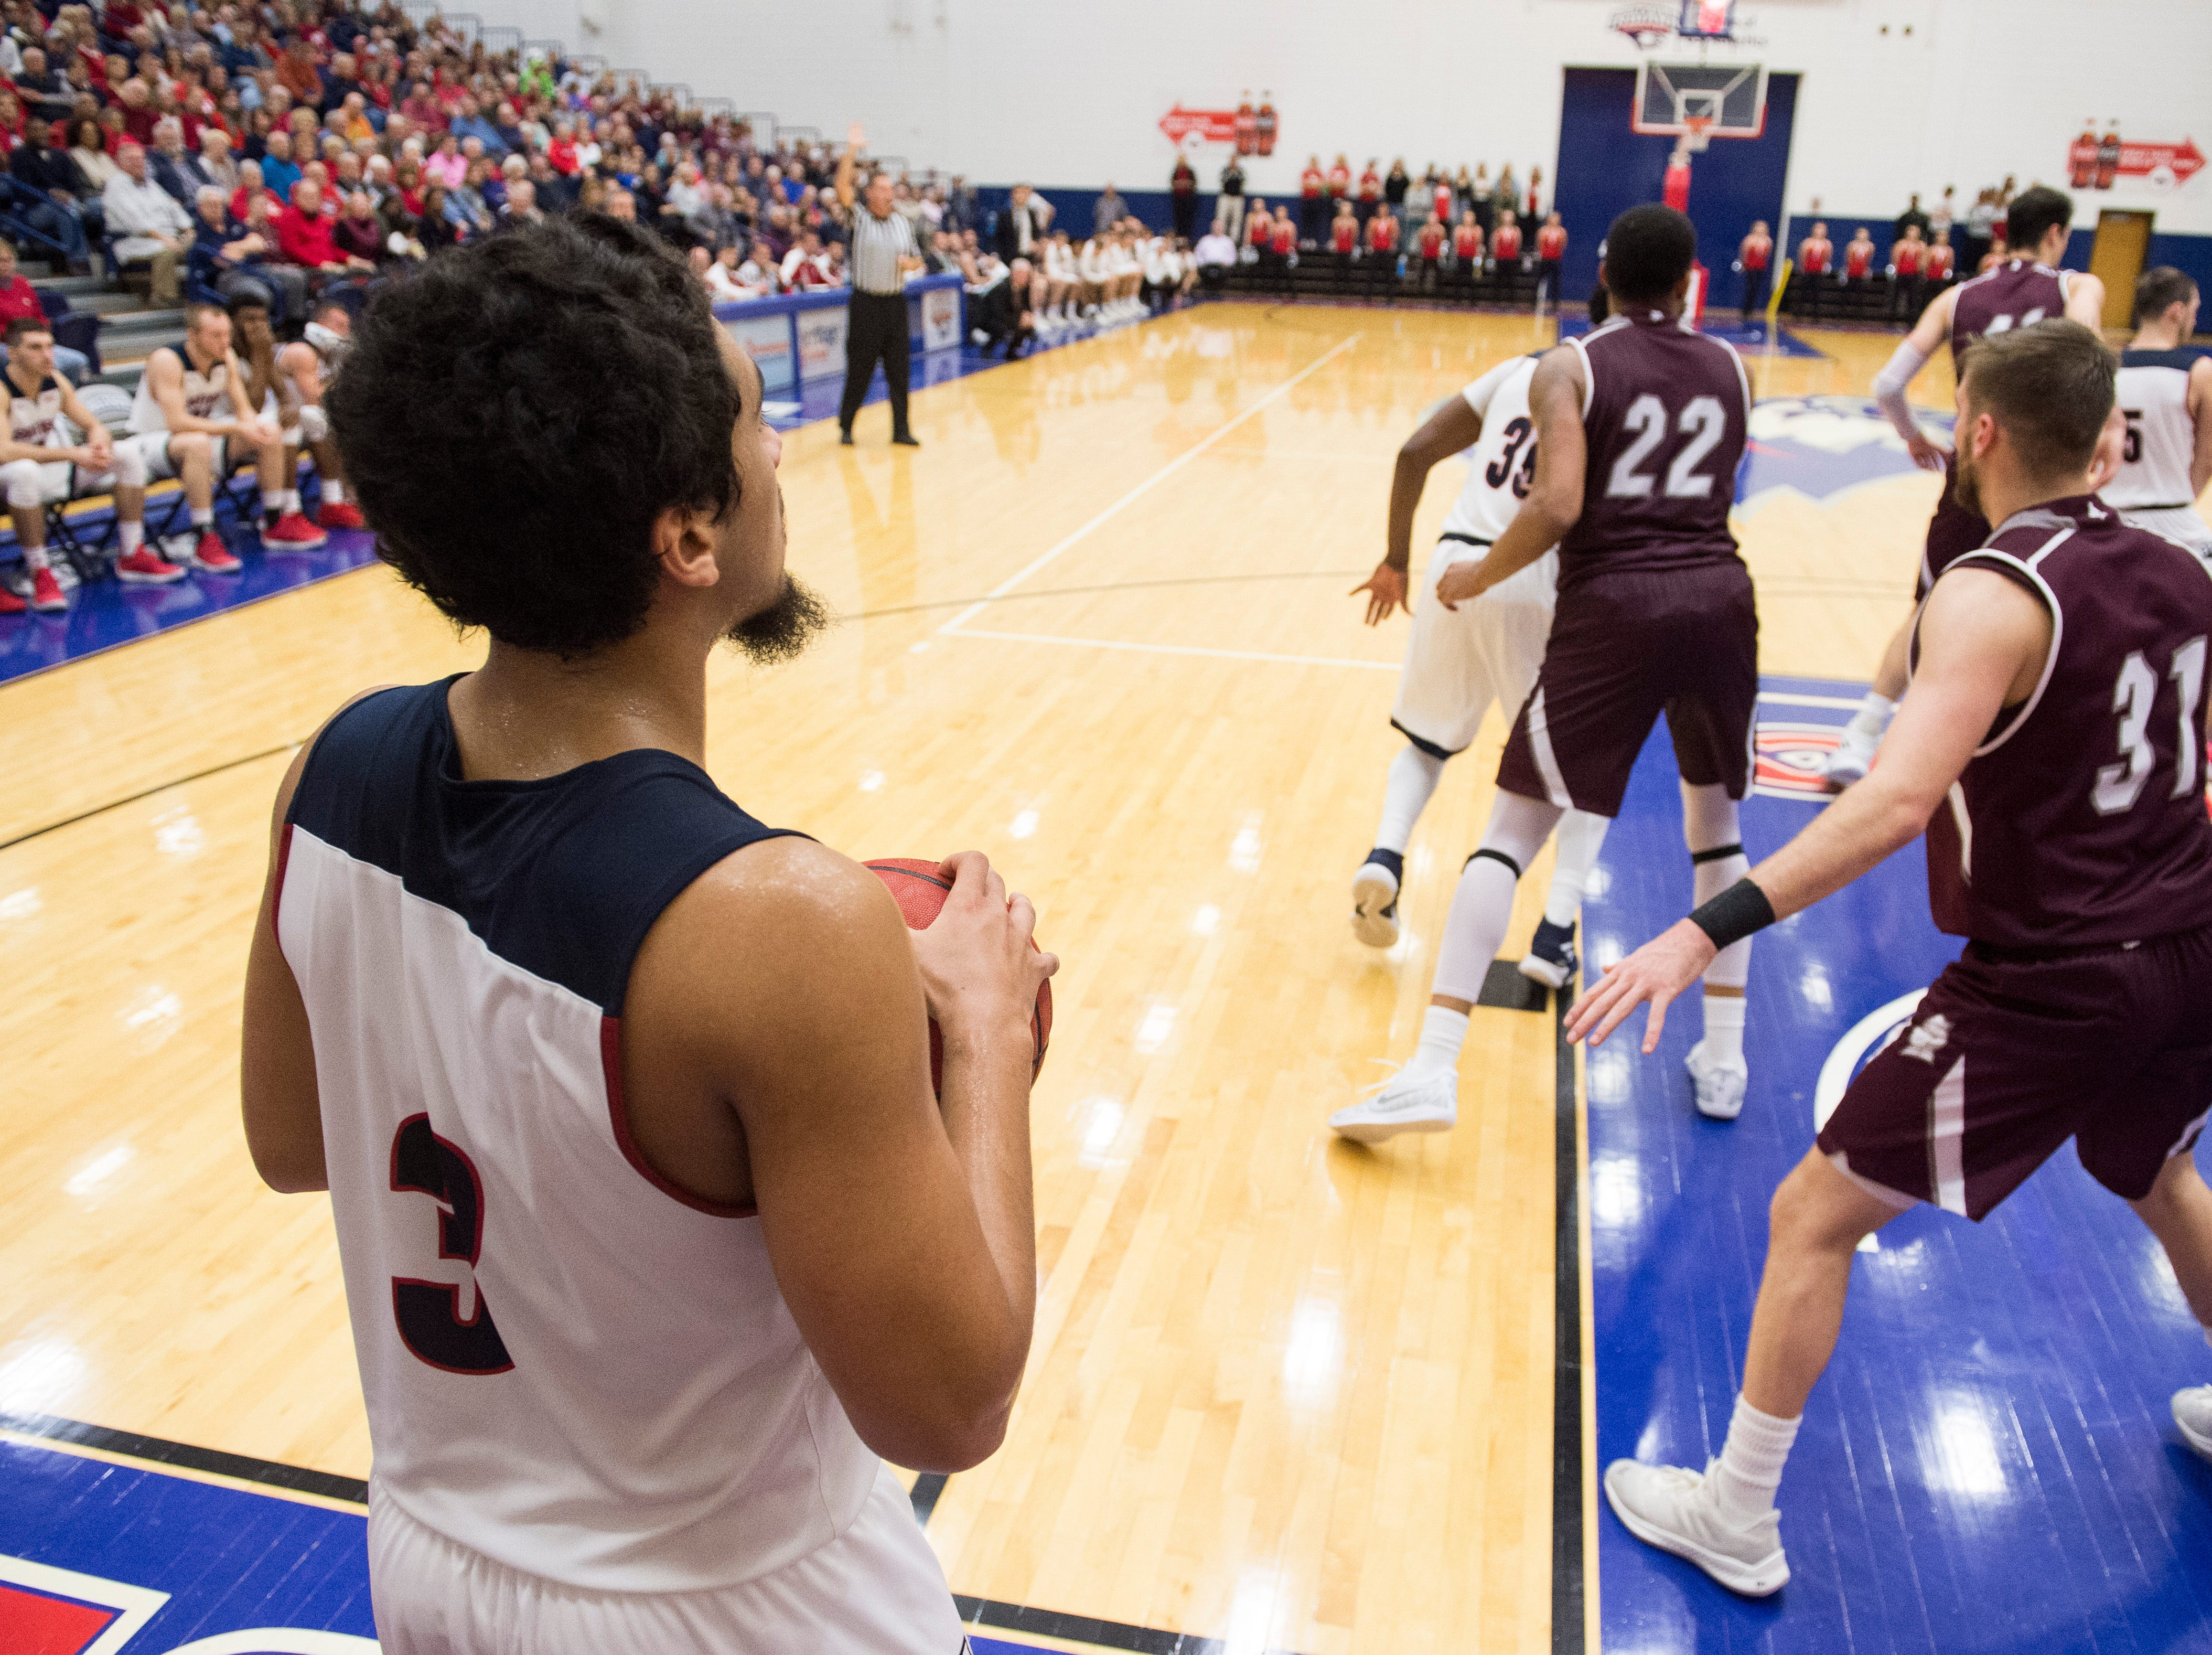 USI's Mateo Rivera (3) looks for an open teammate to pass the ball during the USI vs Bellarmine game at the PAC Saturday, Dec. 1, 2018.